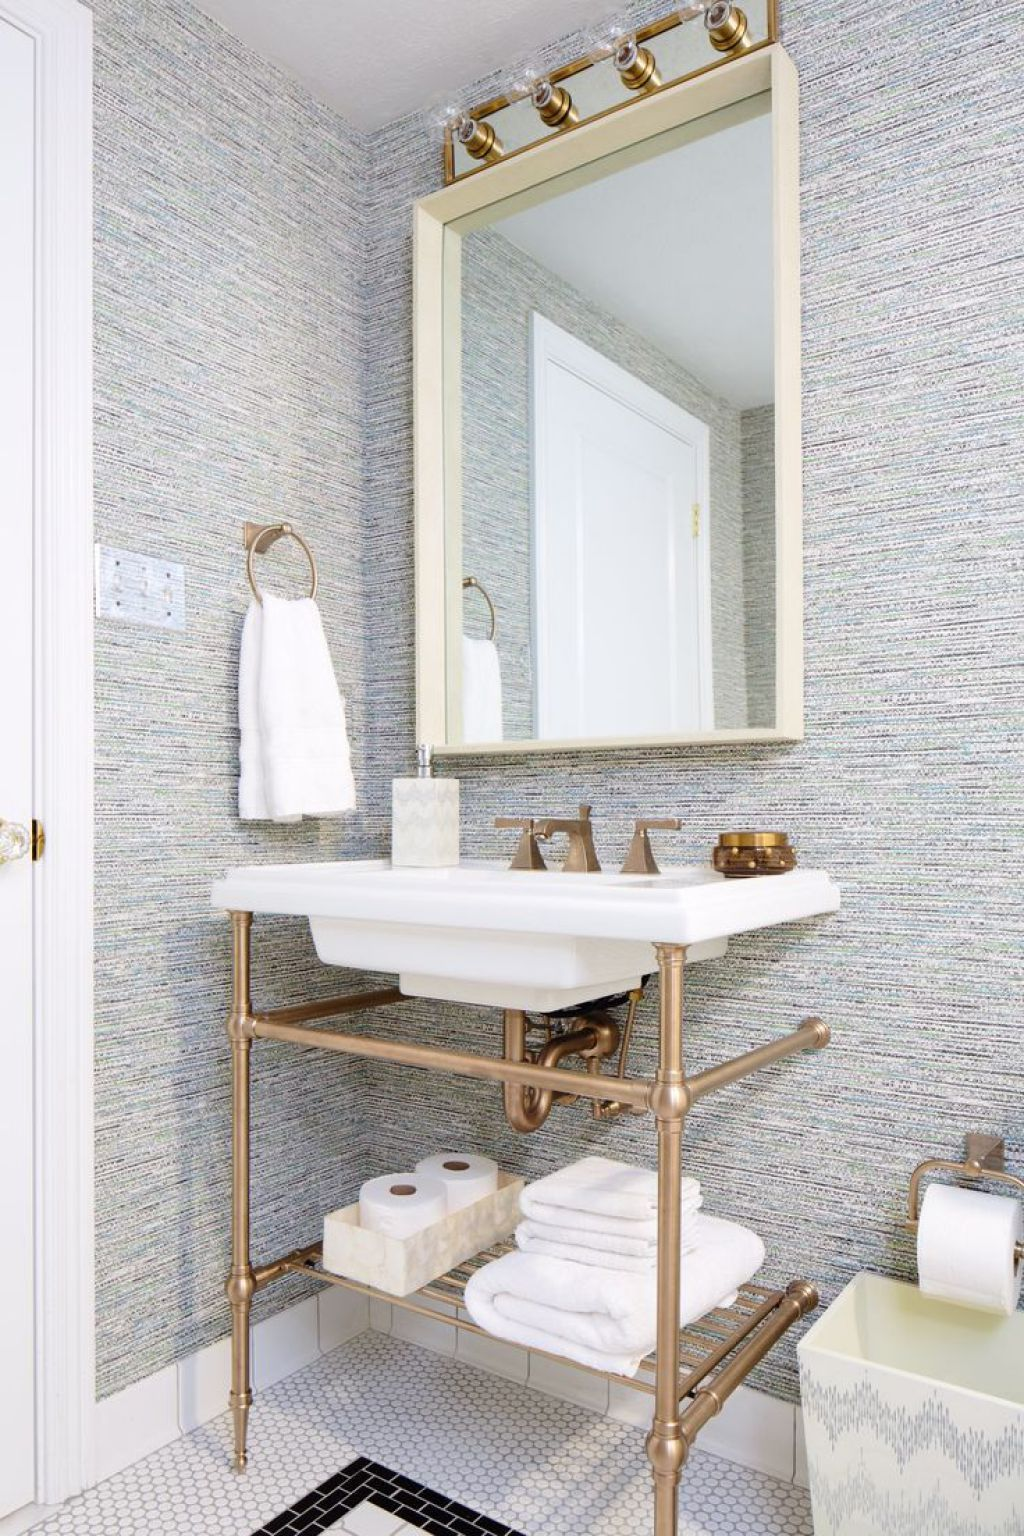 Charming Console Bathroom Sink Check more at http://www.wearefound ...